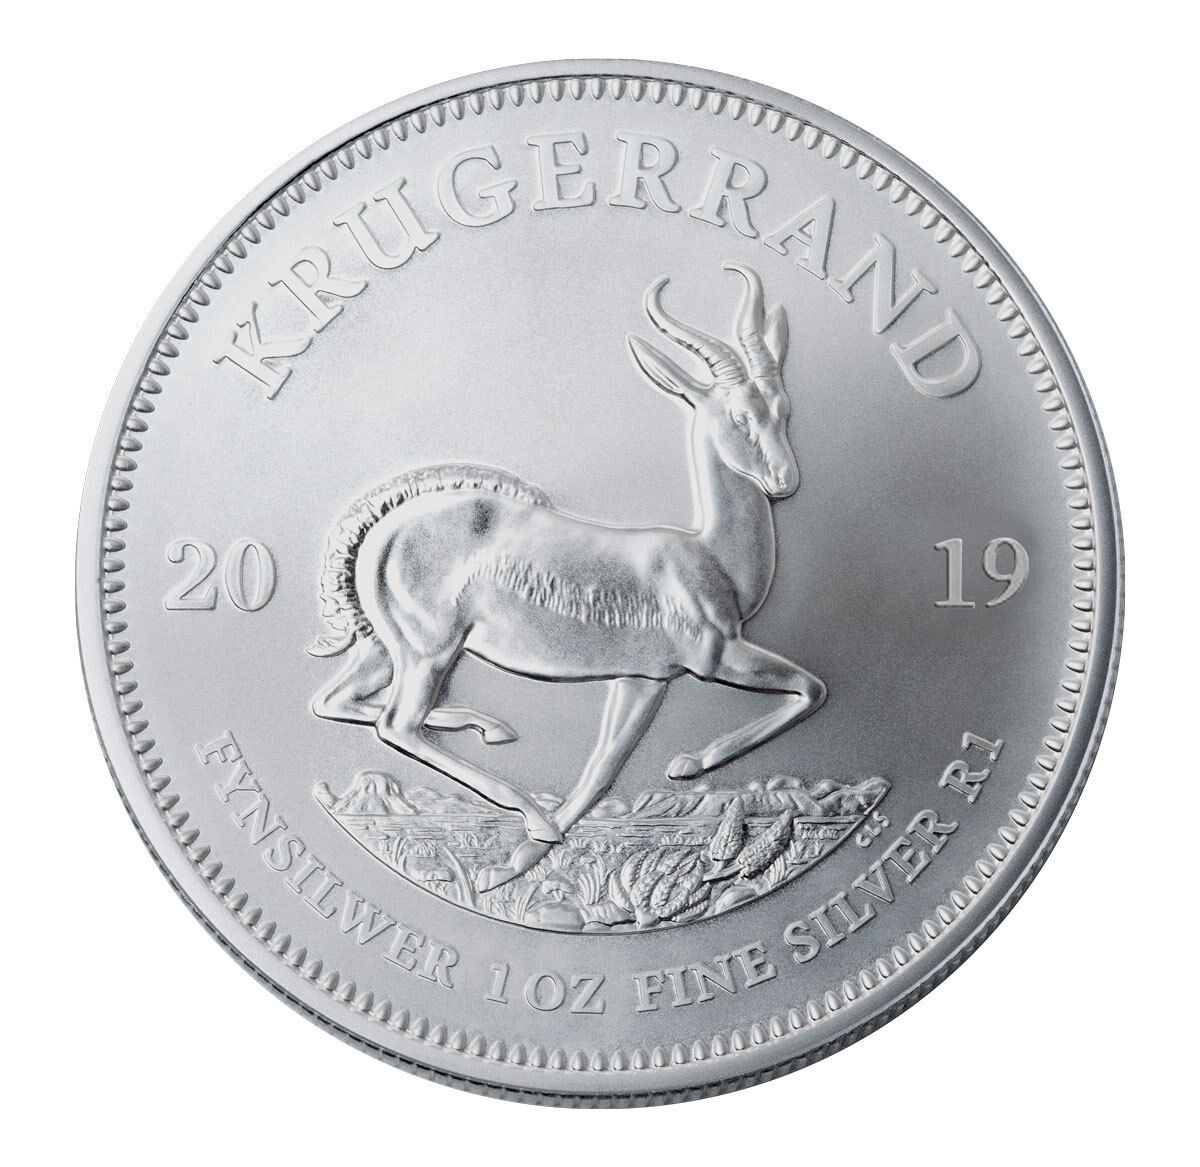 Купить 2019 South Africa 1 oz Silver Krugerrand 1 Rand Coin GEM BU SKU56598